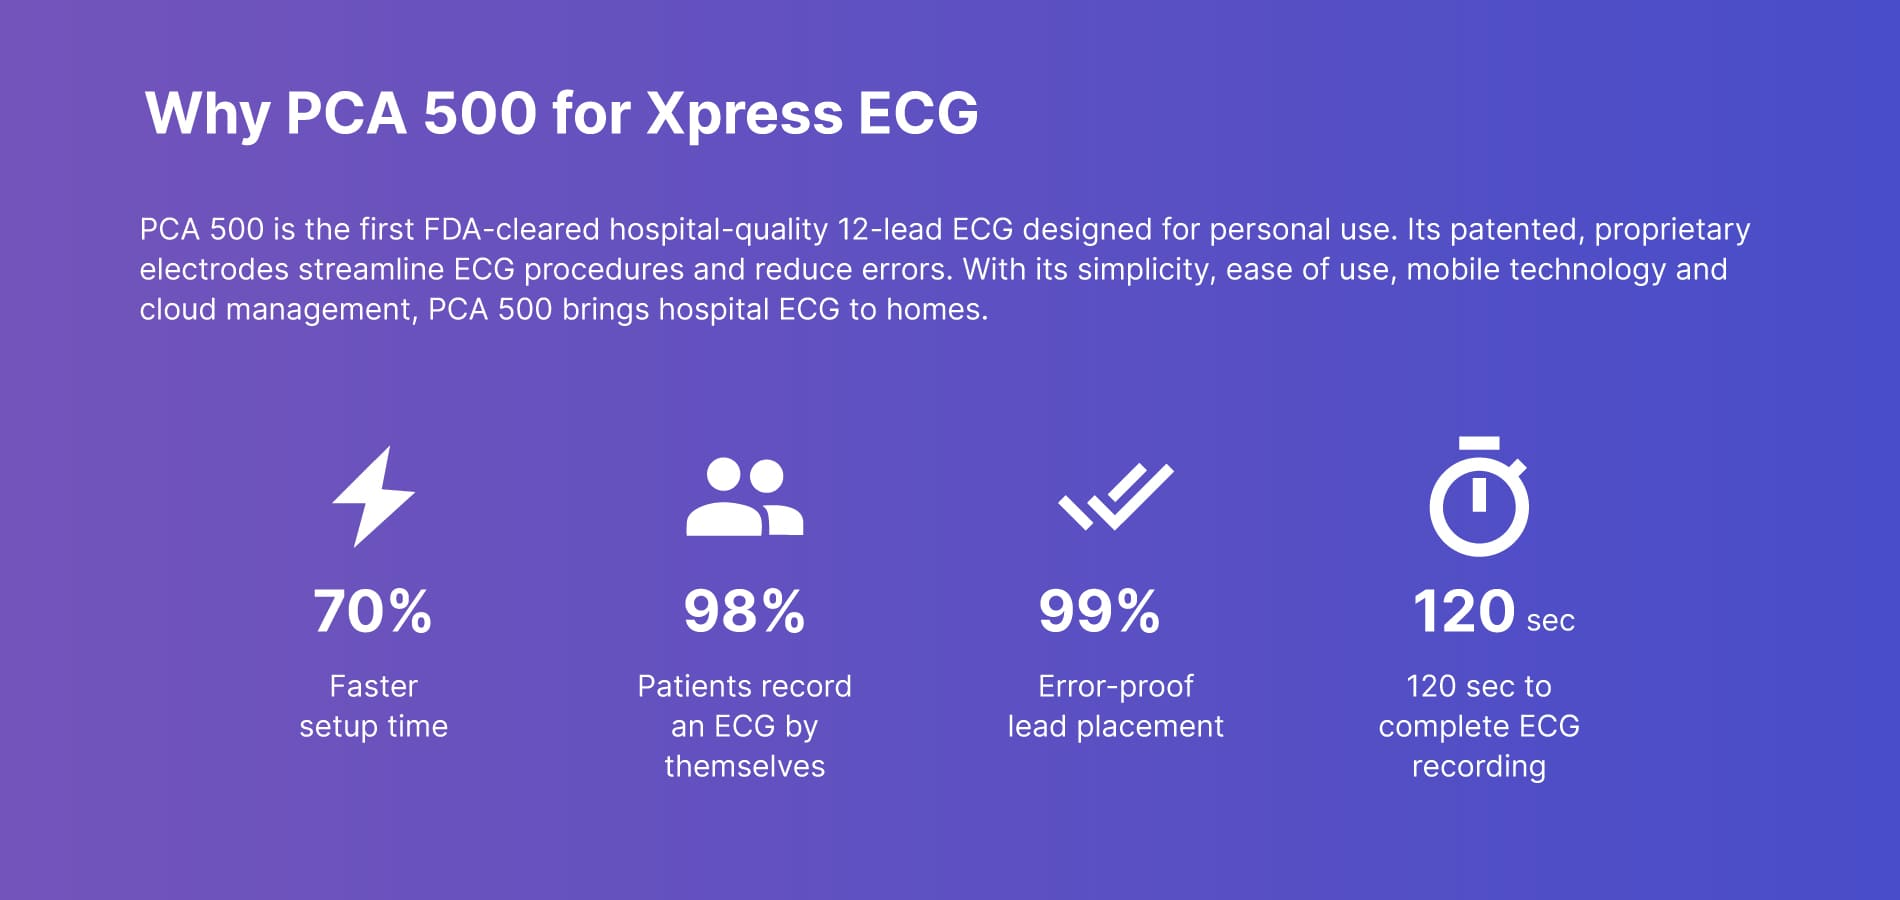 PCA 500 is the first FDA-cleared hospital-quality 12-lead ECG designed for personal use. Its patented, proprietary electrodes streamline ECG procedures and reduce errors. With its simplicity, ease of use, mobile technology and cloud management, PCA 500 brings hospital ECG to homes.98% Patients record an ECG by themselves  99% Error-proof lead placement 120 sec to complete ECG recording